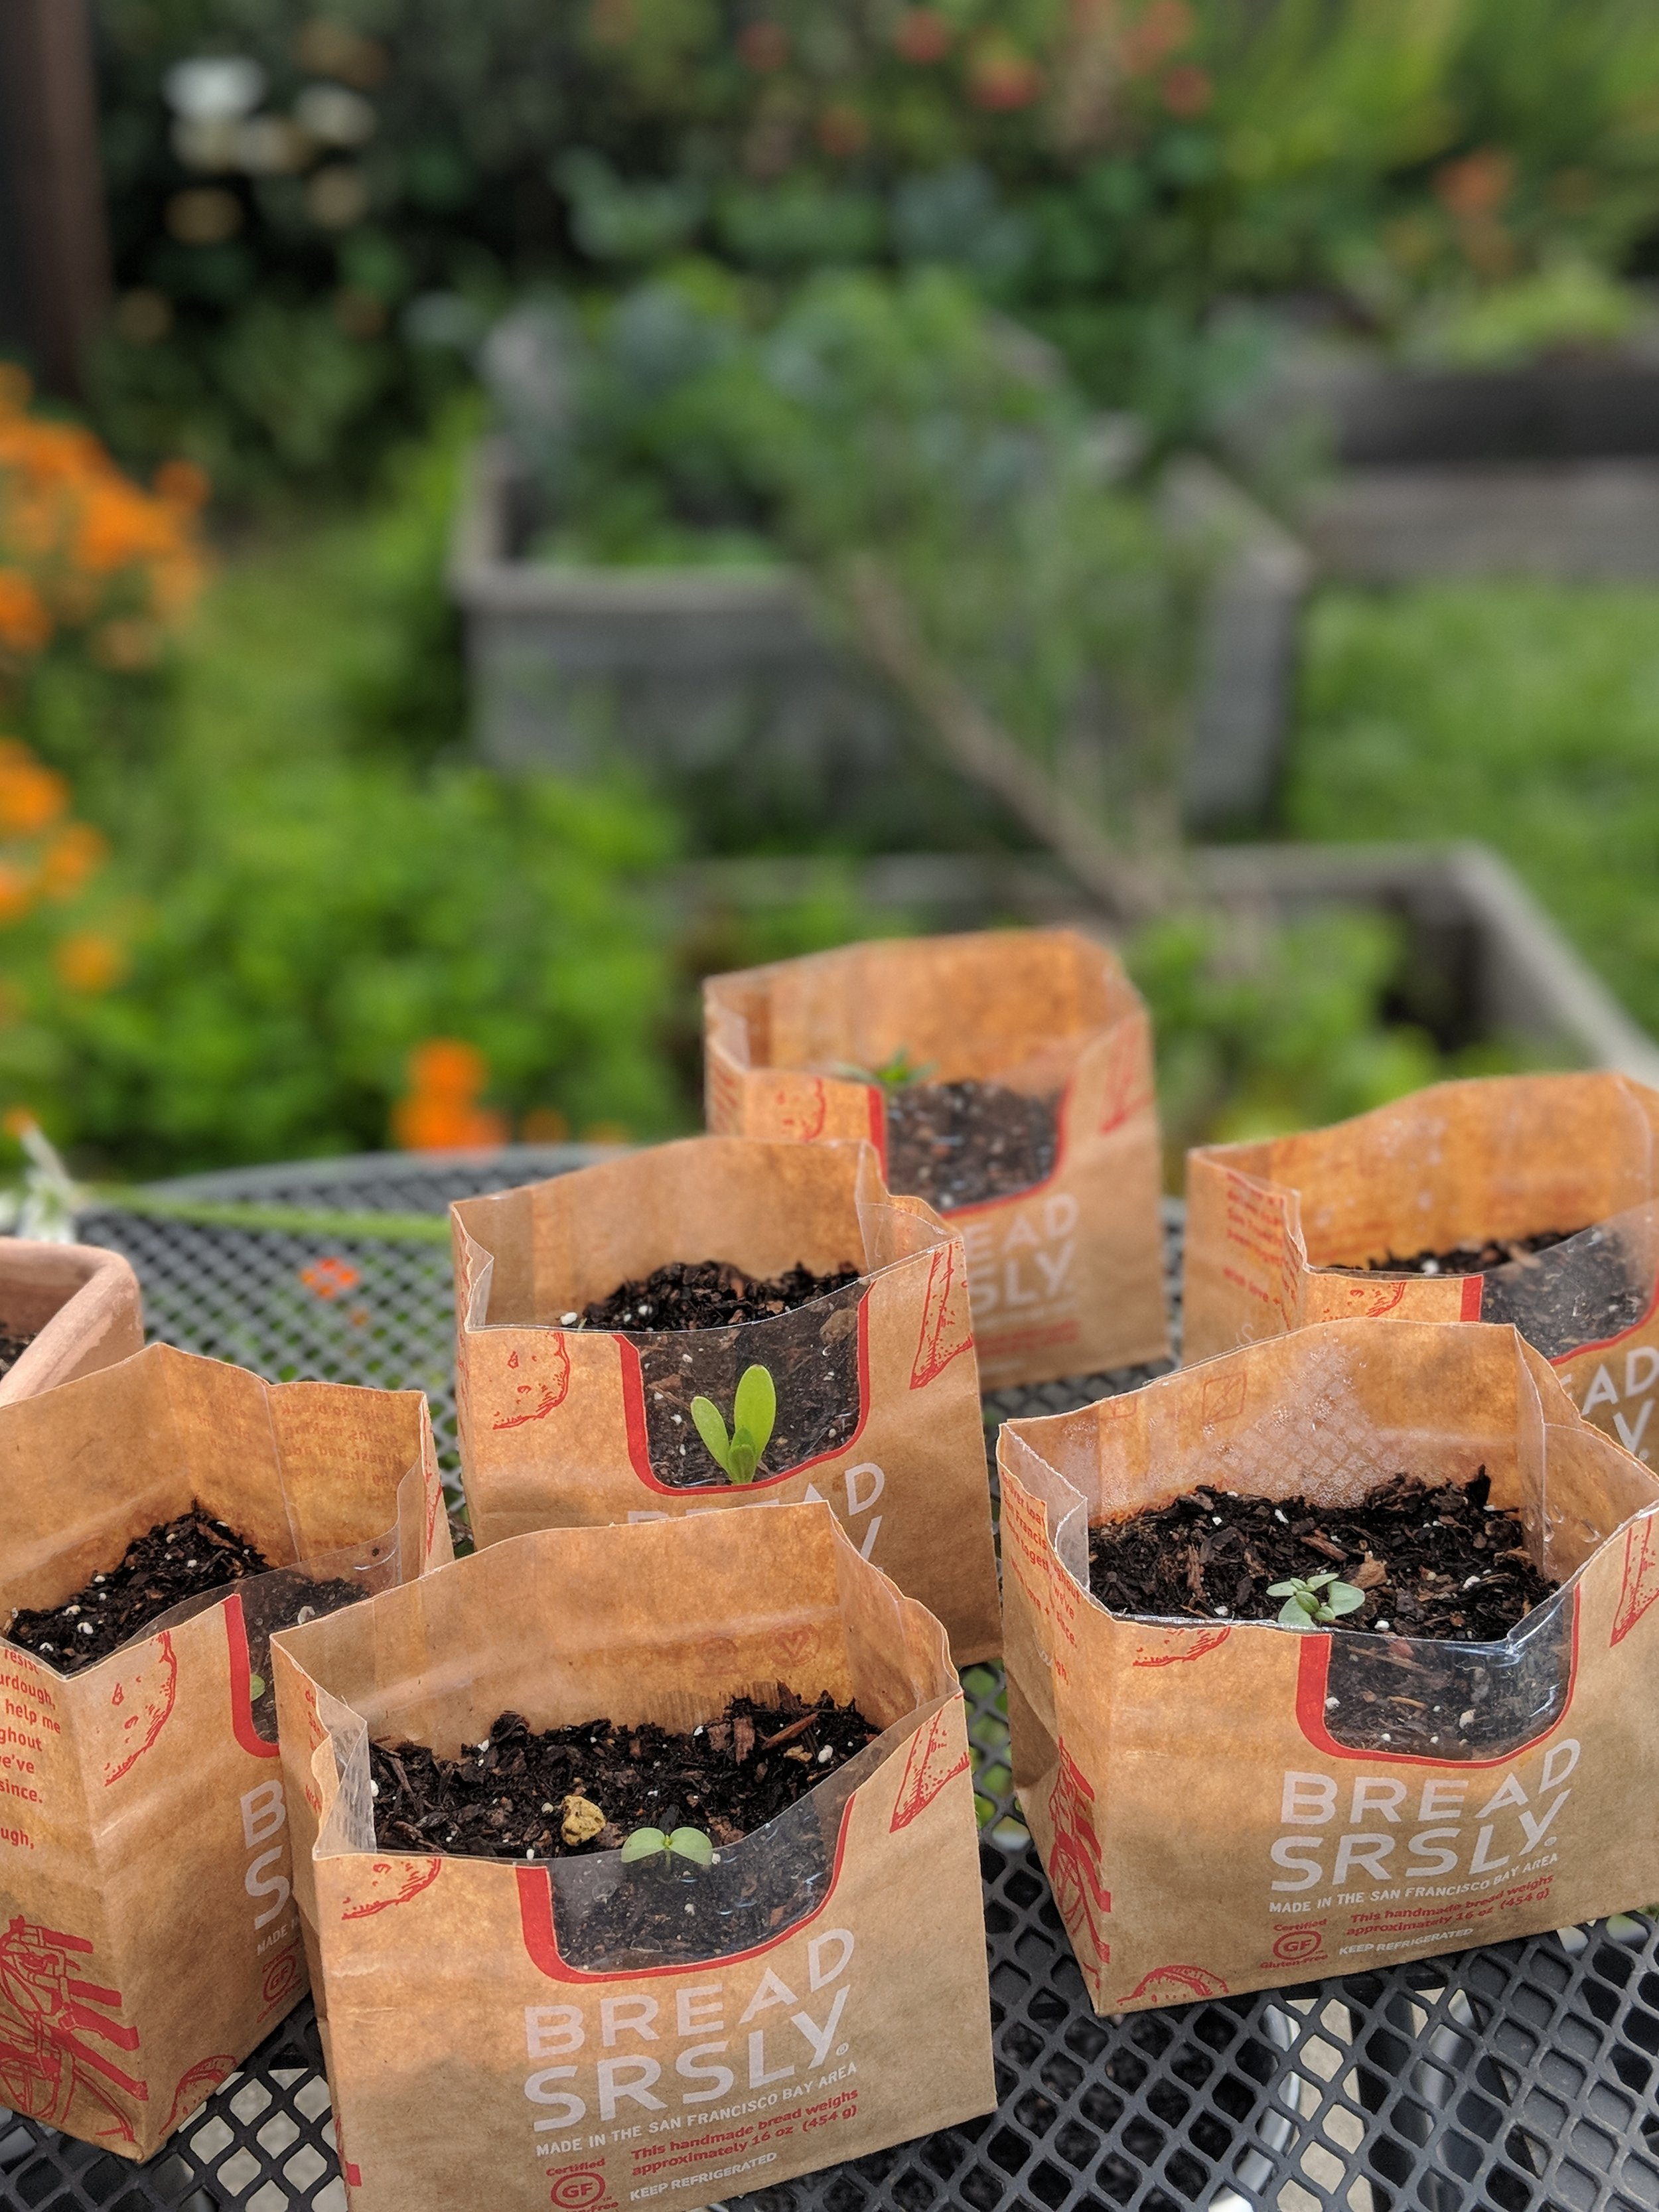 Bread-SRSLY-bags-used-as-planter-bags